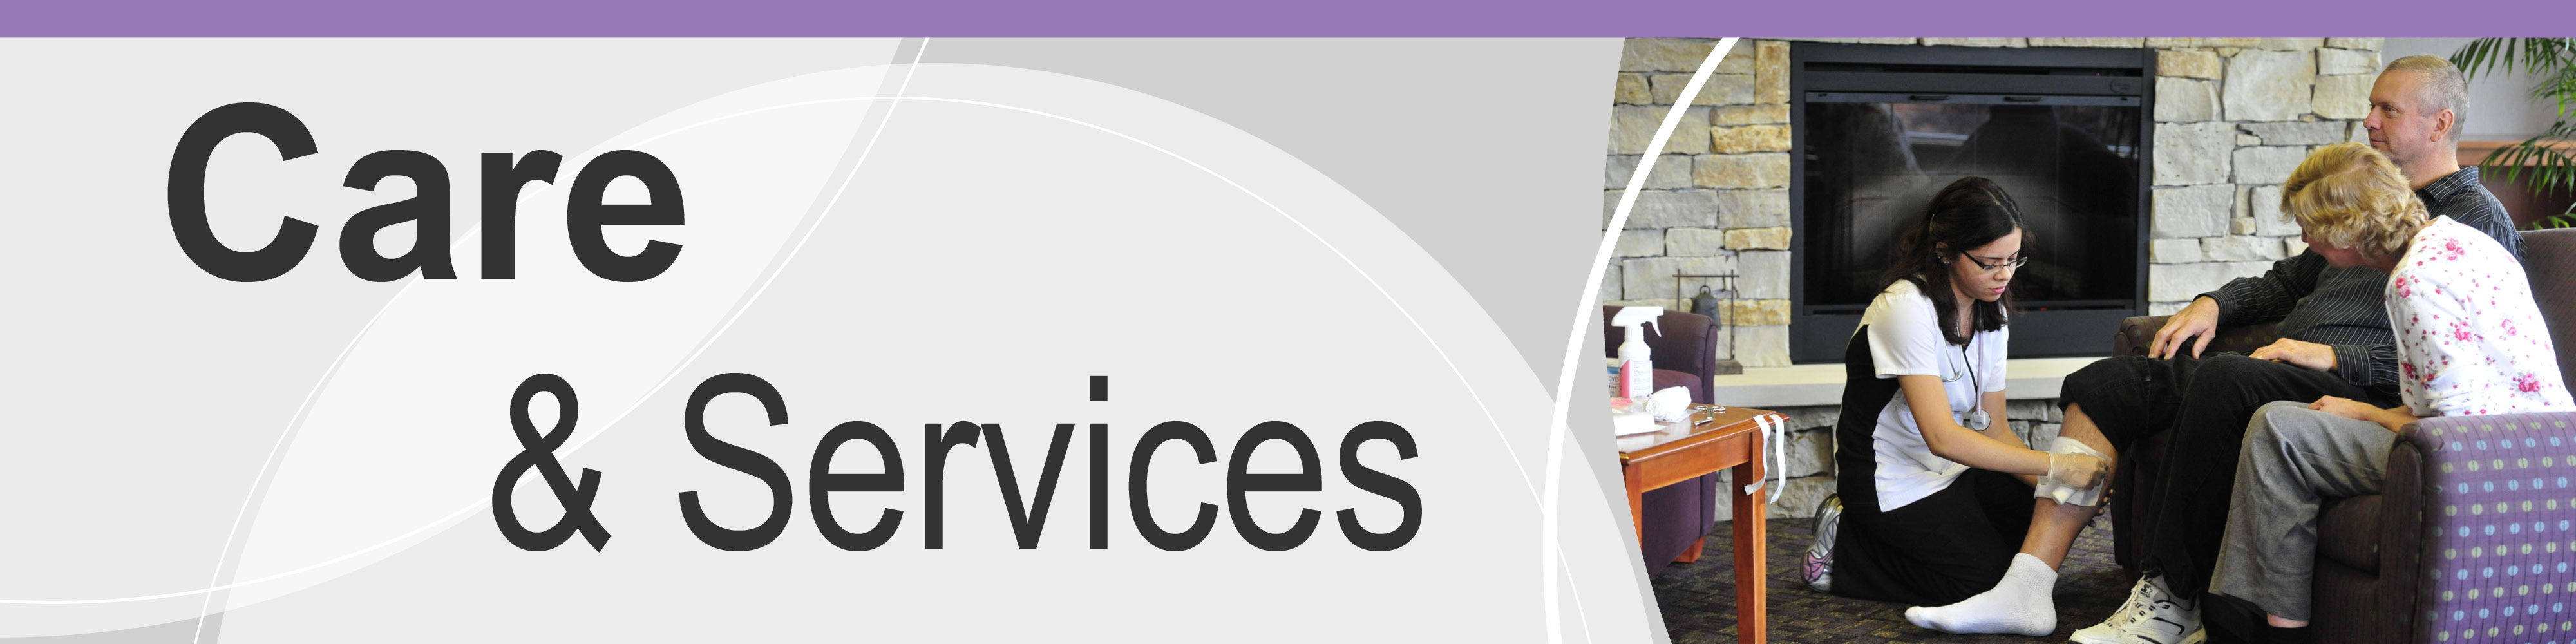 care & services mobile2